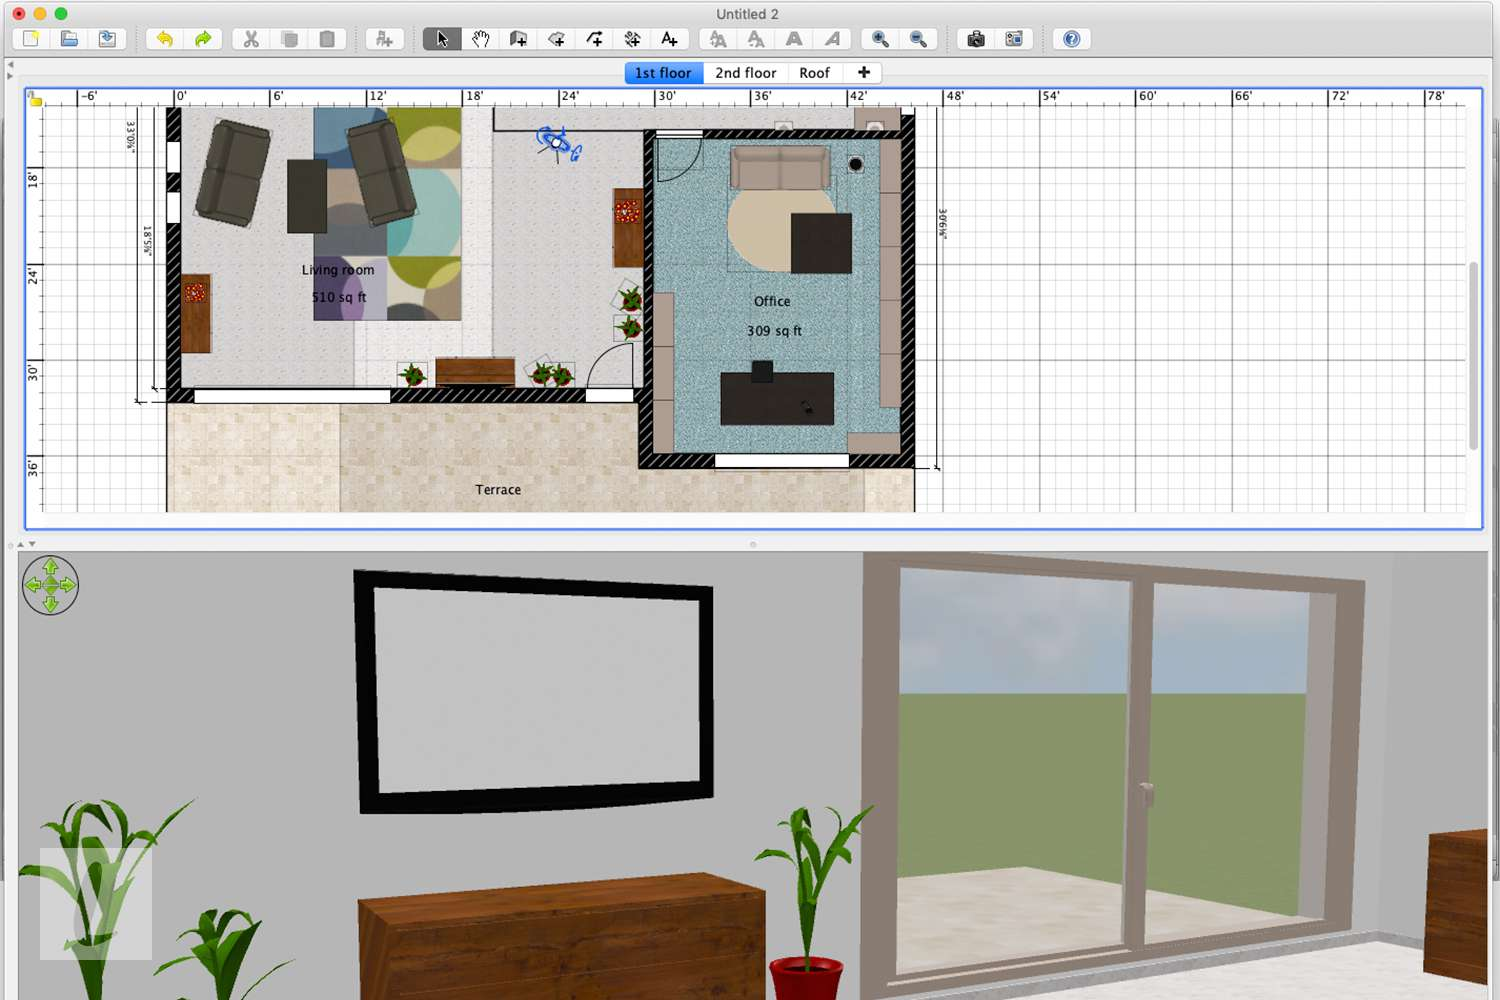 Weitere virengeprüfte software aus der kategorie grafik & foto finden. Sweet Home 3d Review Fun And Easy With Some Limitations